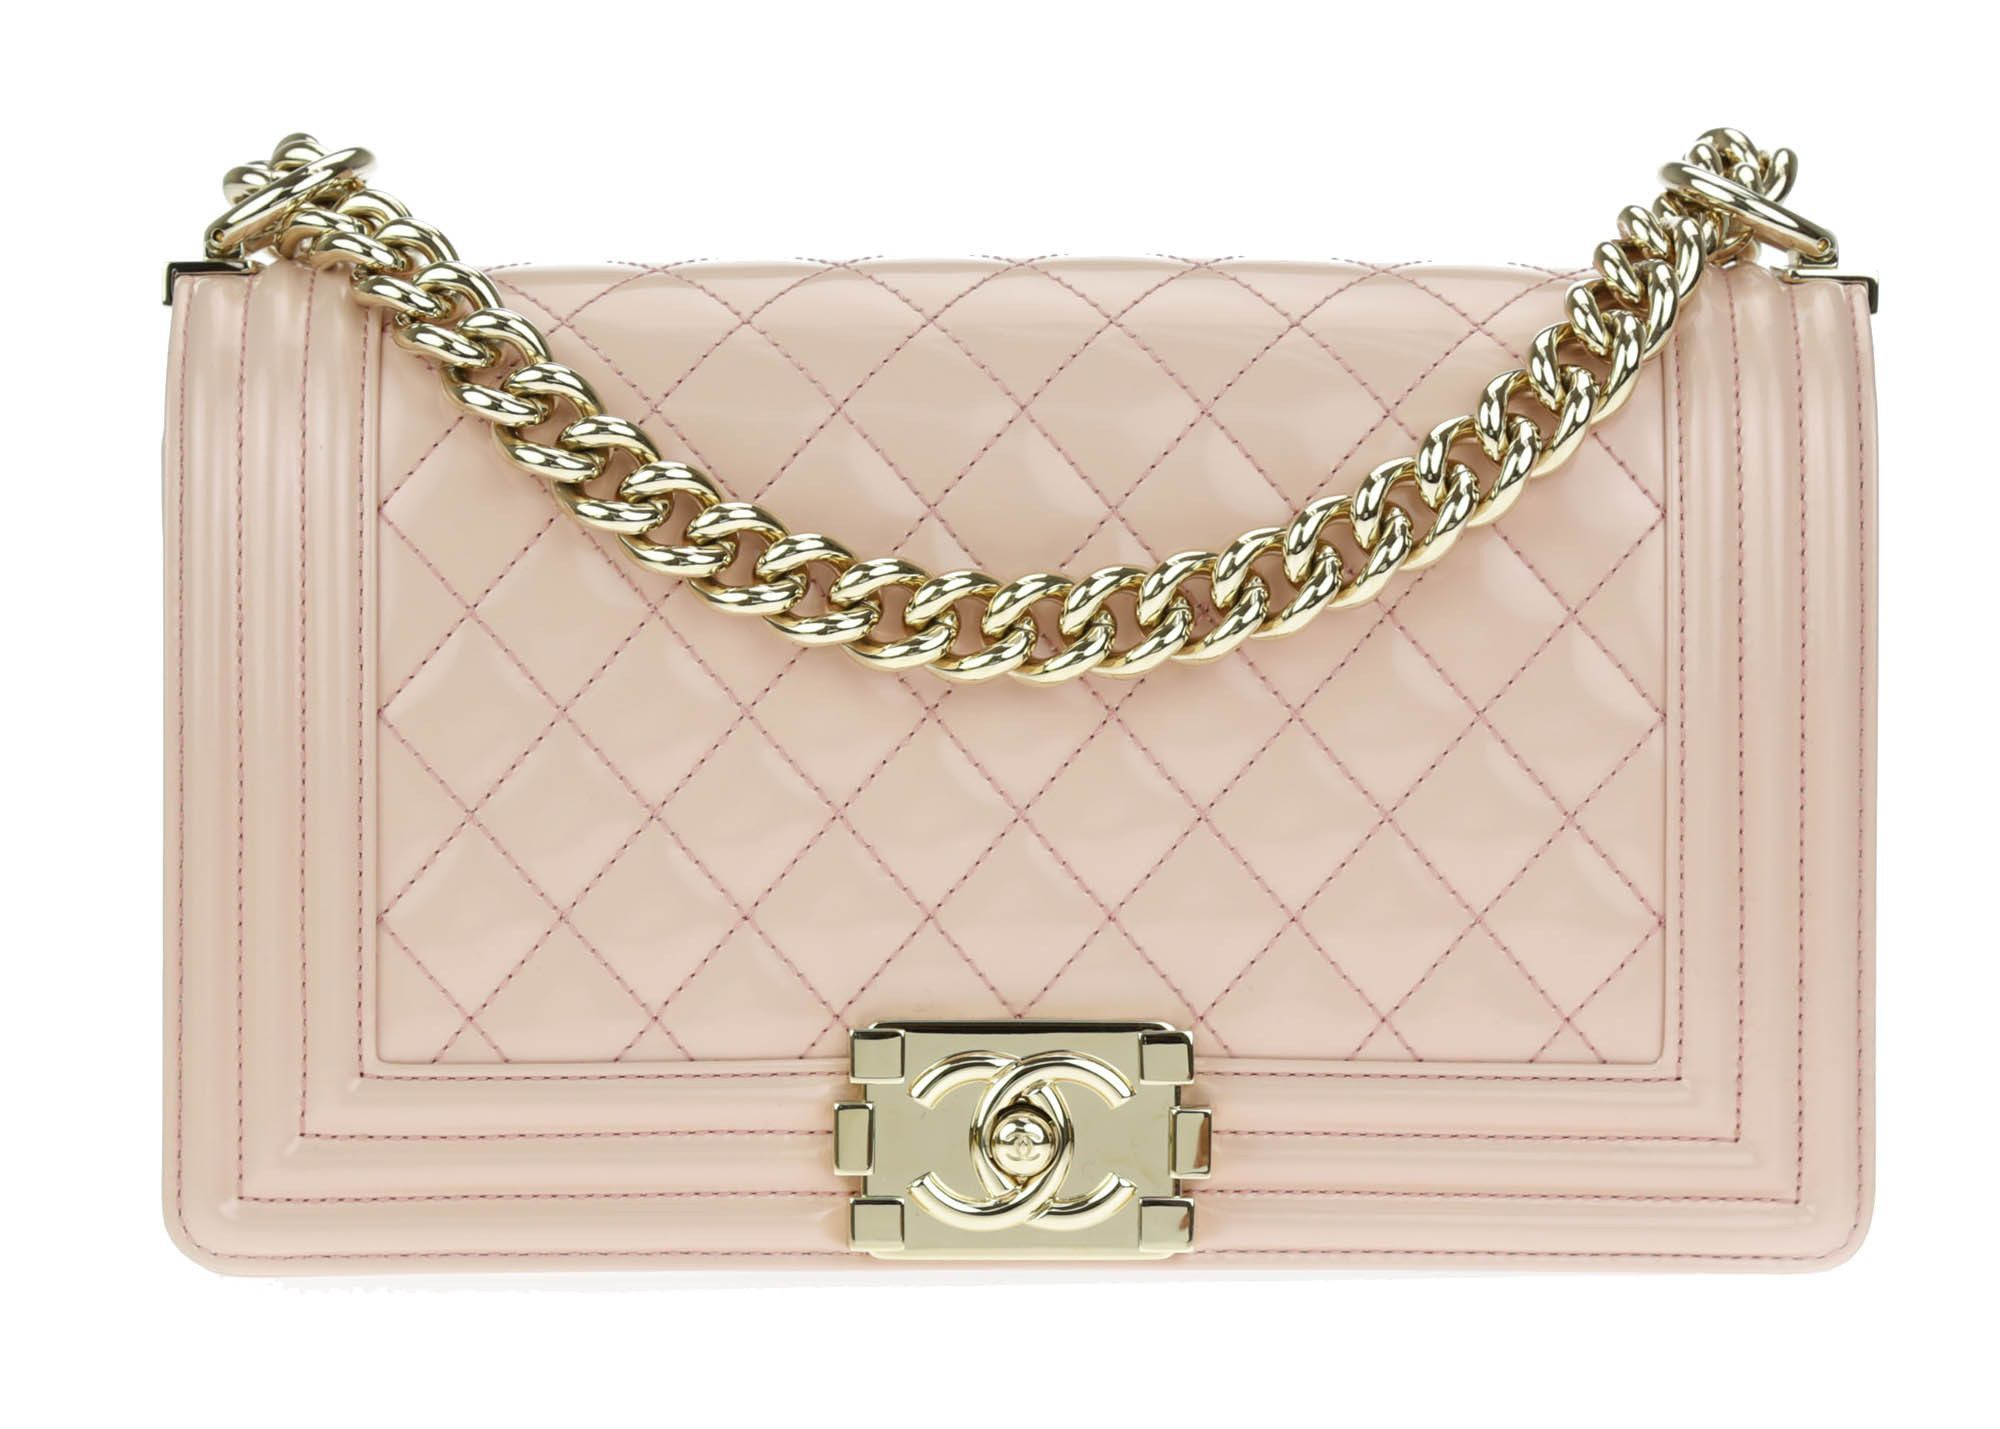 9f4e3b7f2a1c Chanel Light Pink Patent Leather Medium Boy Bag | Couture | Patent ...